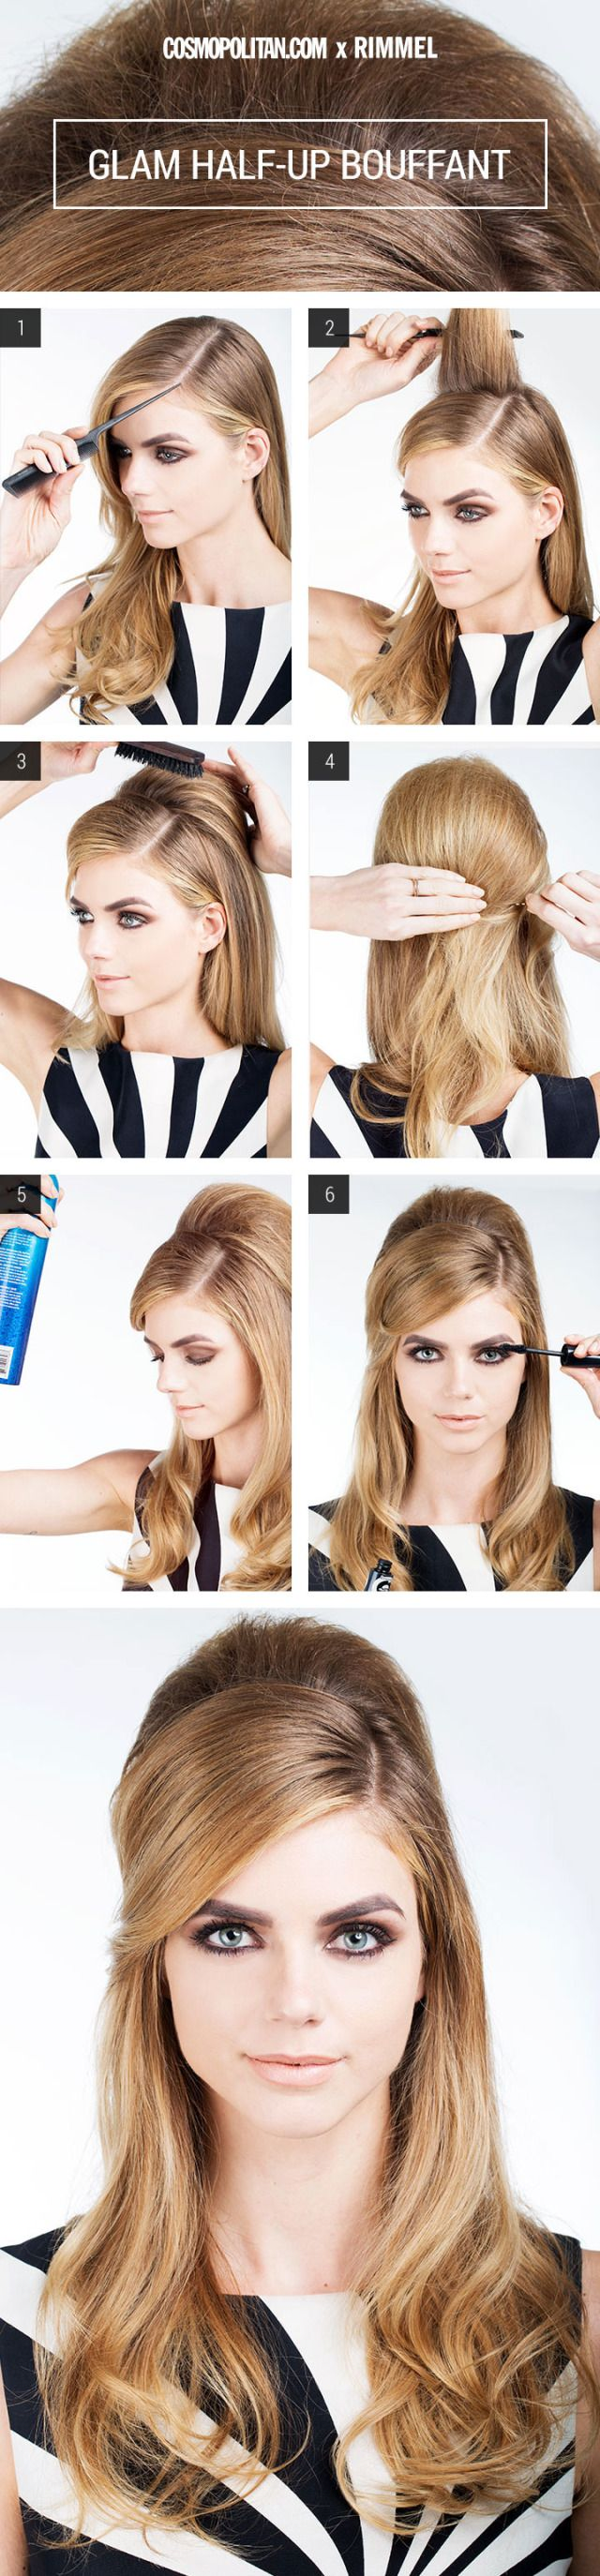 top 10 chic party hairstyles